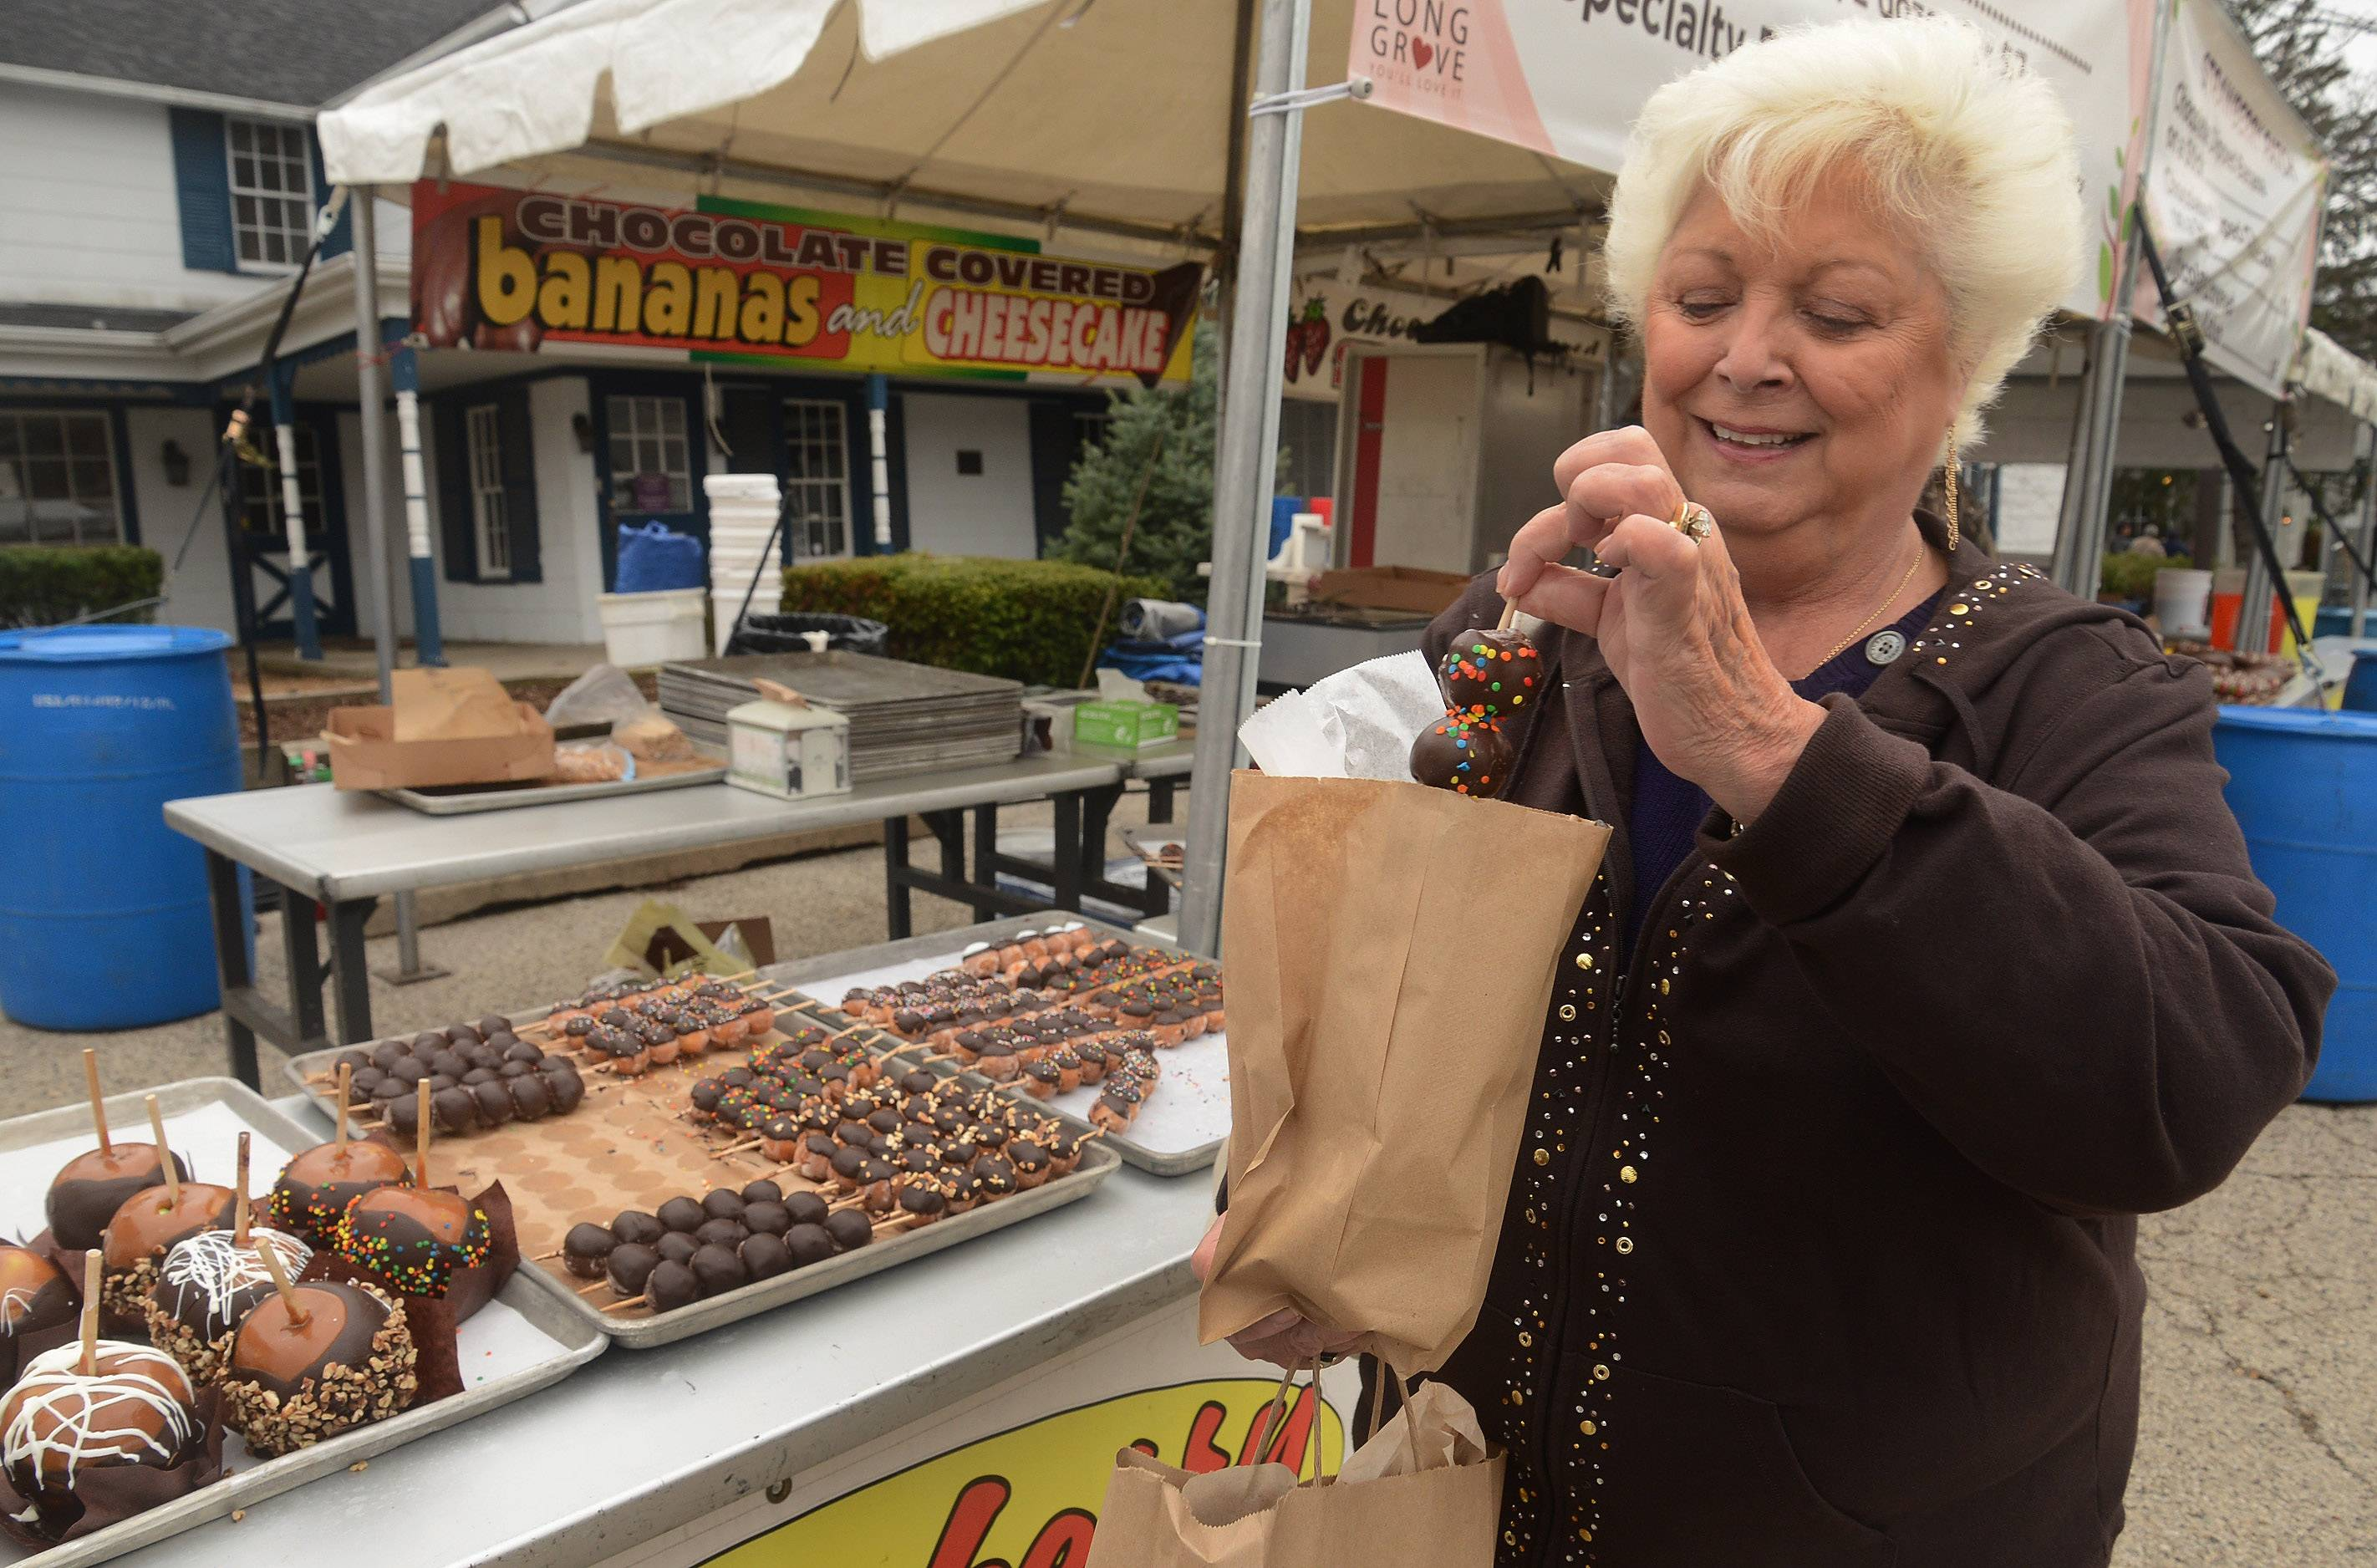 Carmie Foreman of Northbrook buys some chocolate-covered doughnut holes from the Strawberry Patch.